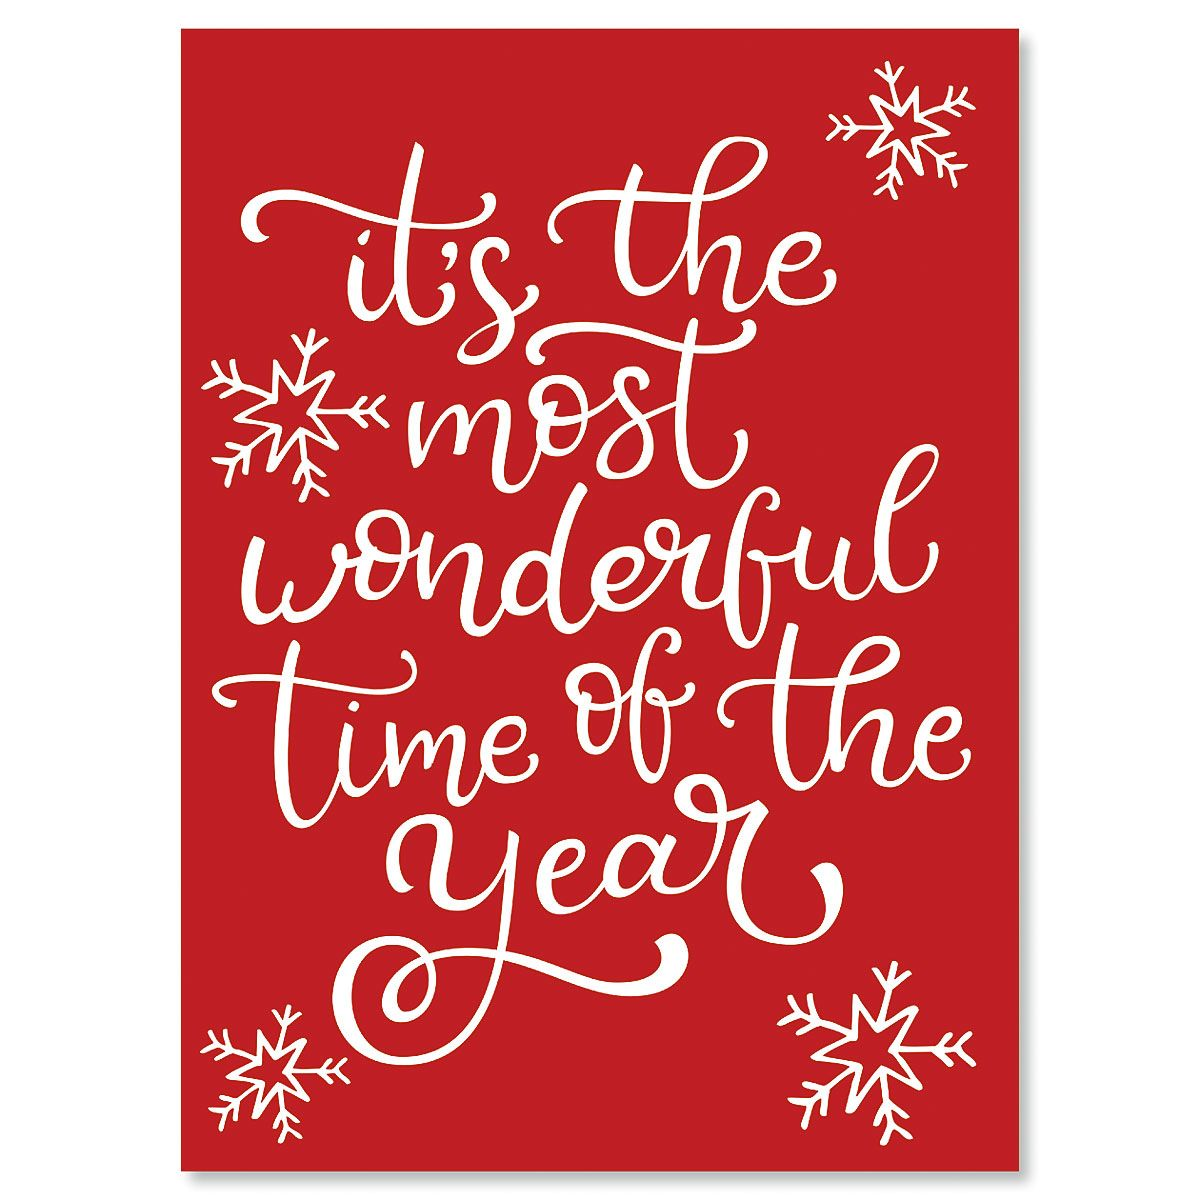 Most Wonderful Personalized Christmas Cards - Set of 72